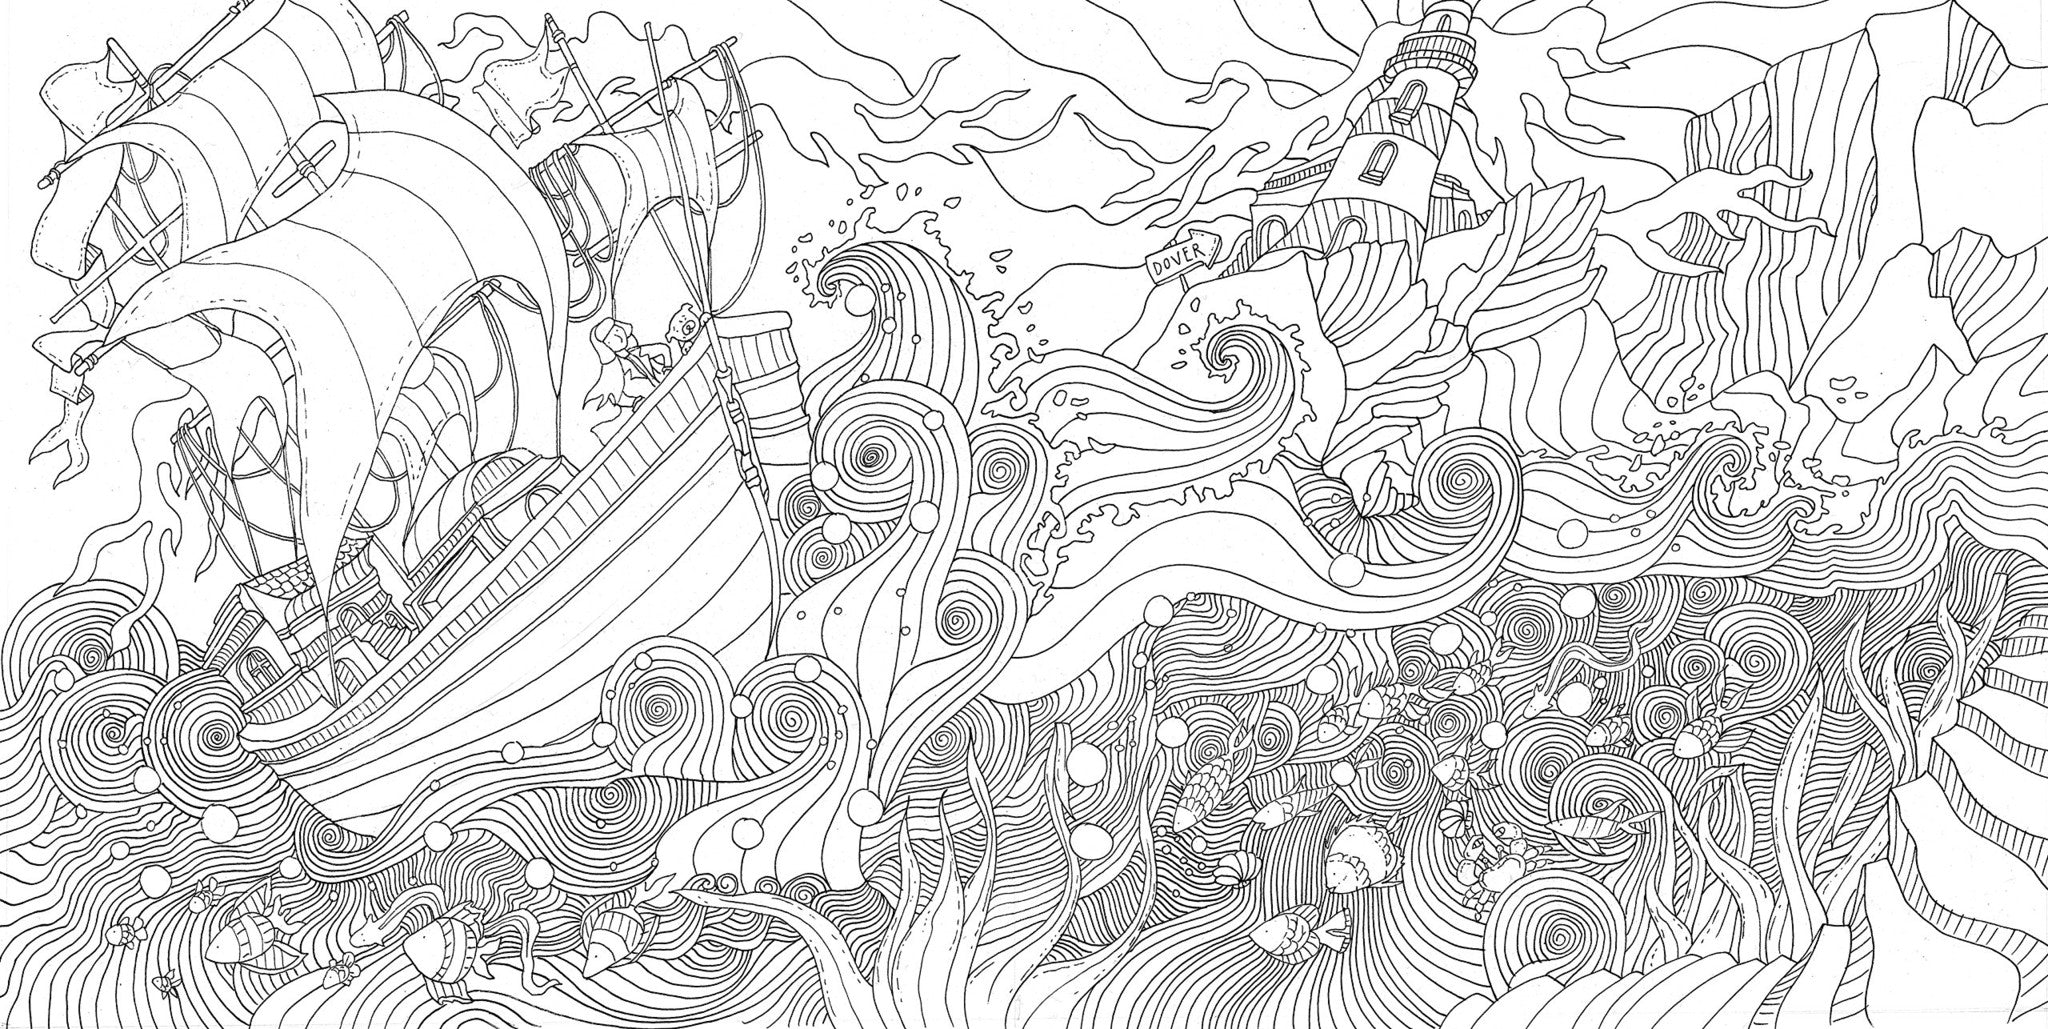 The enchanted forest colouring book nz - The Magical Journey A Colouring Book